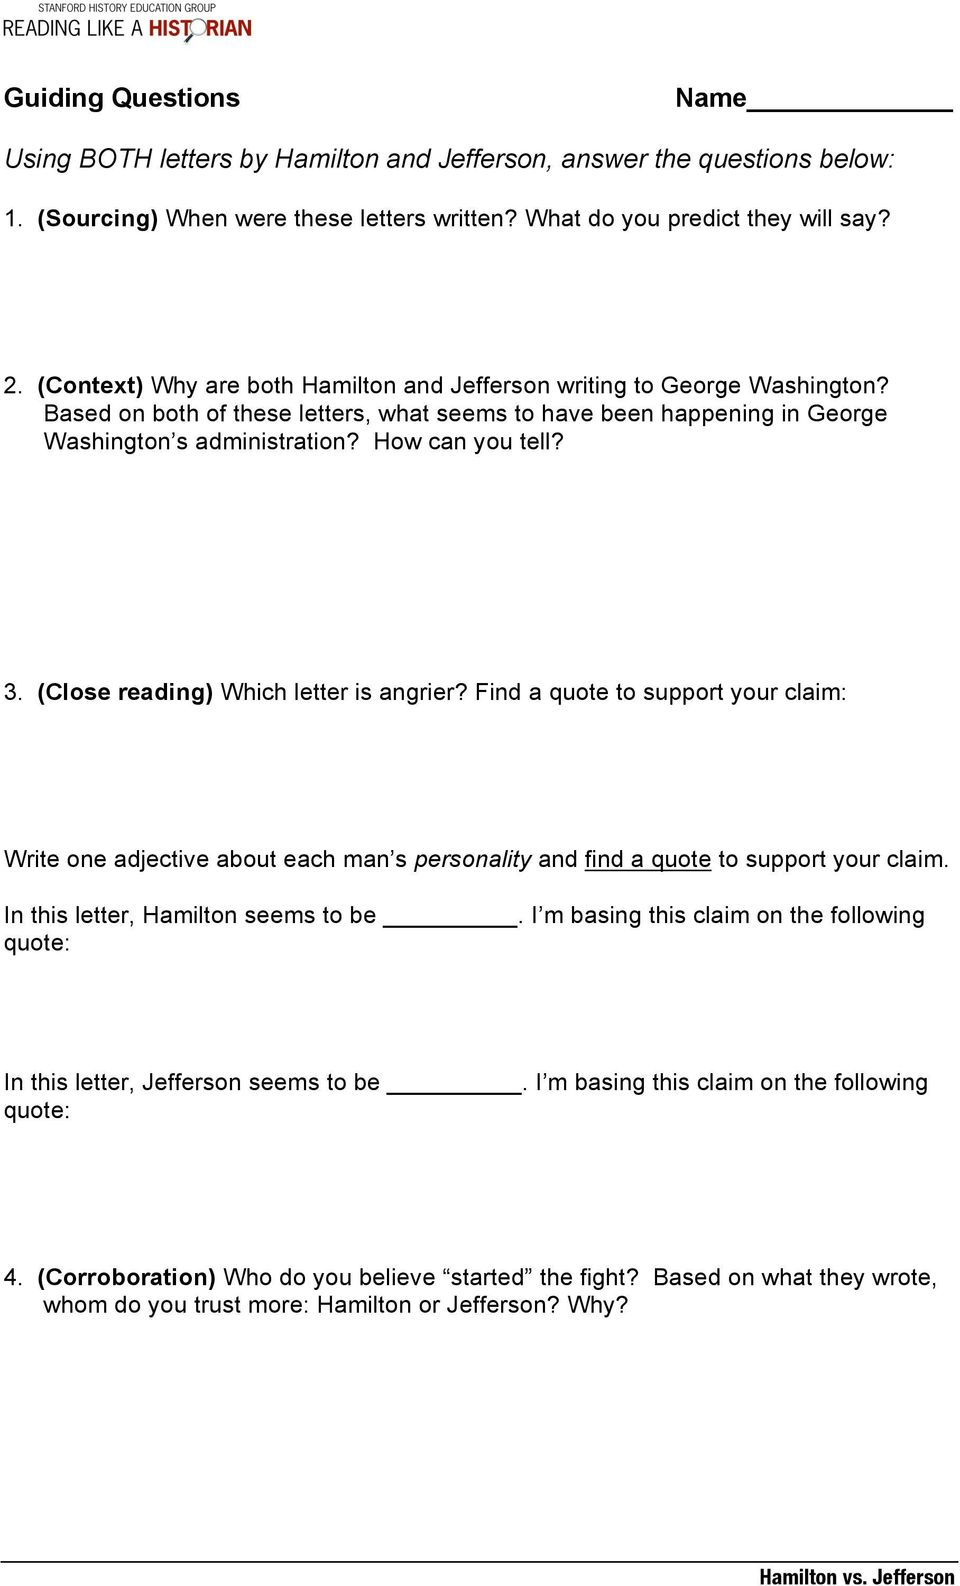 hamilton vs jefferson lesson plan central historical question   close reading which letter is angrier find a quote to support